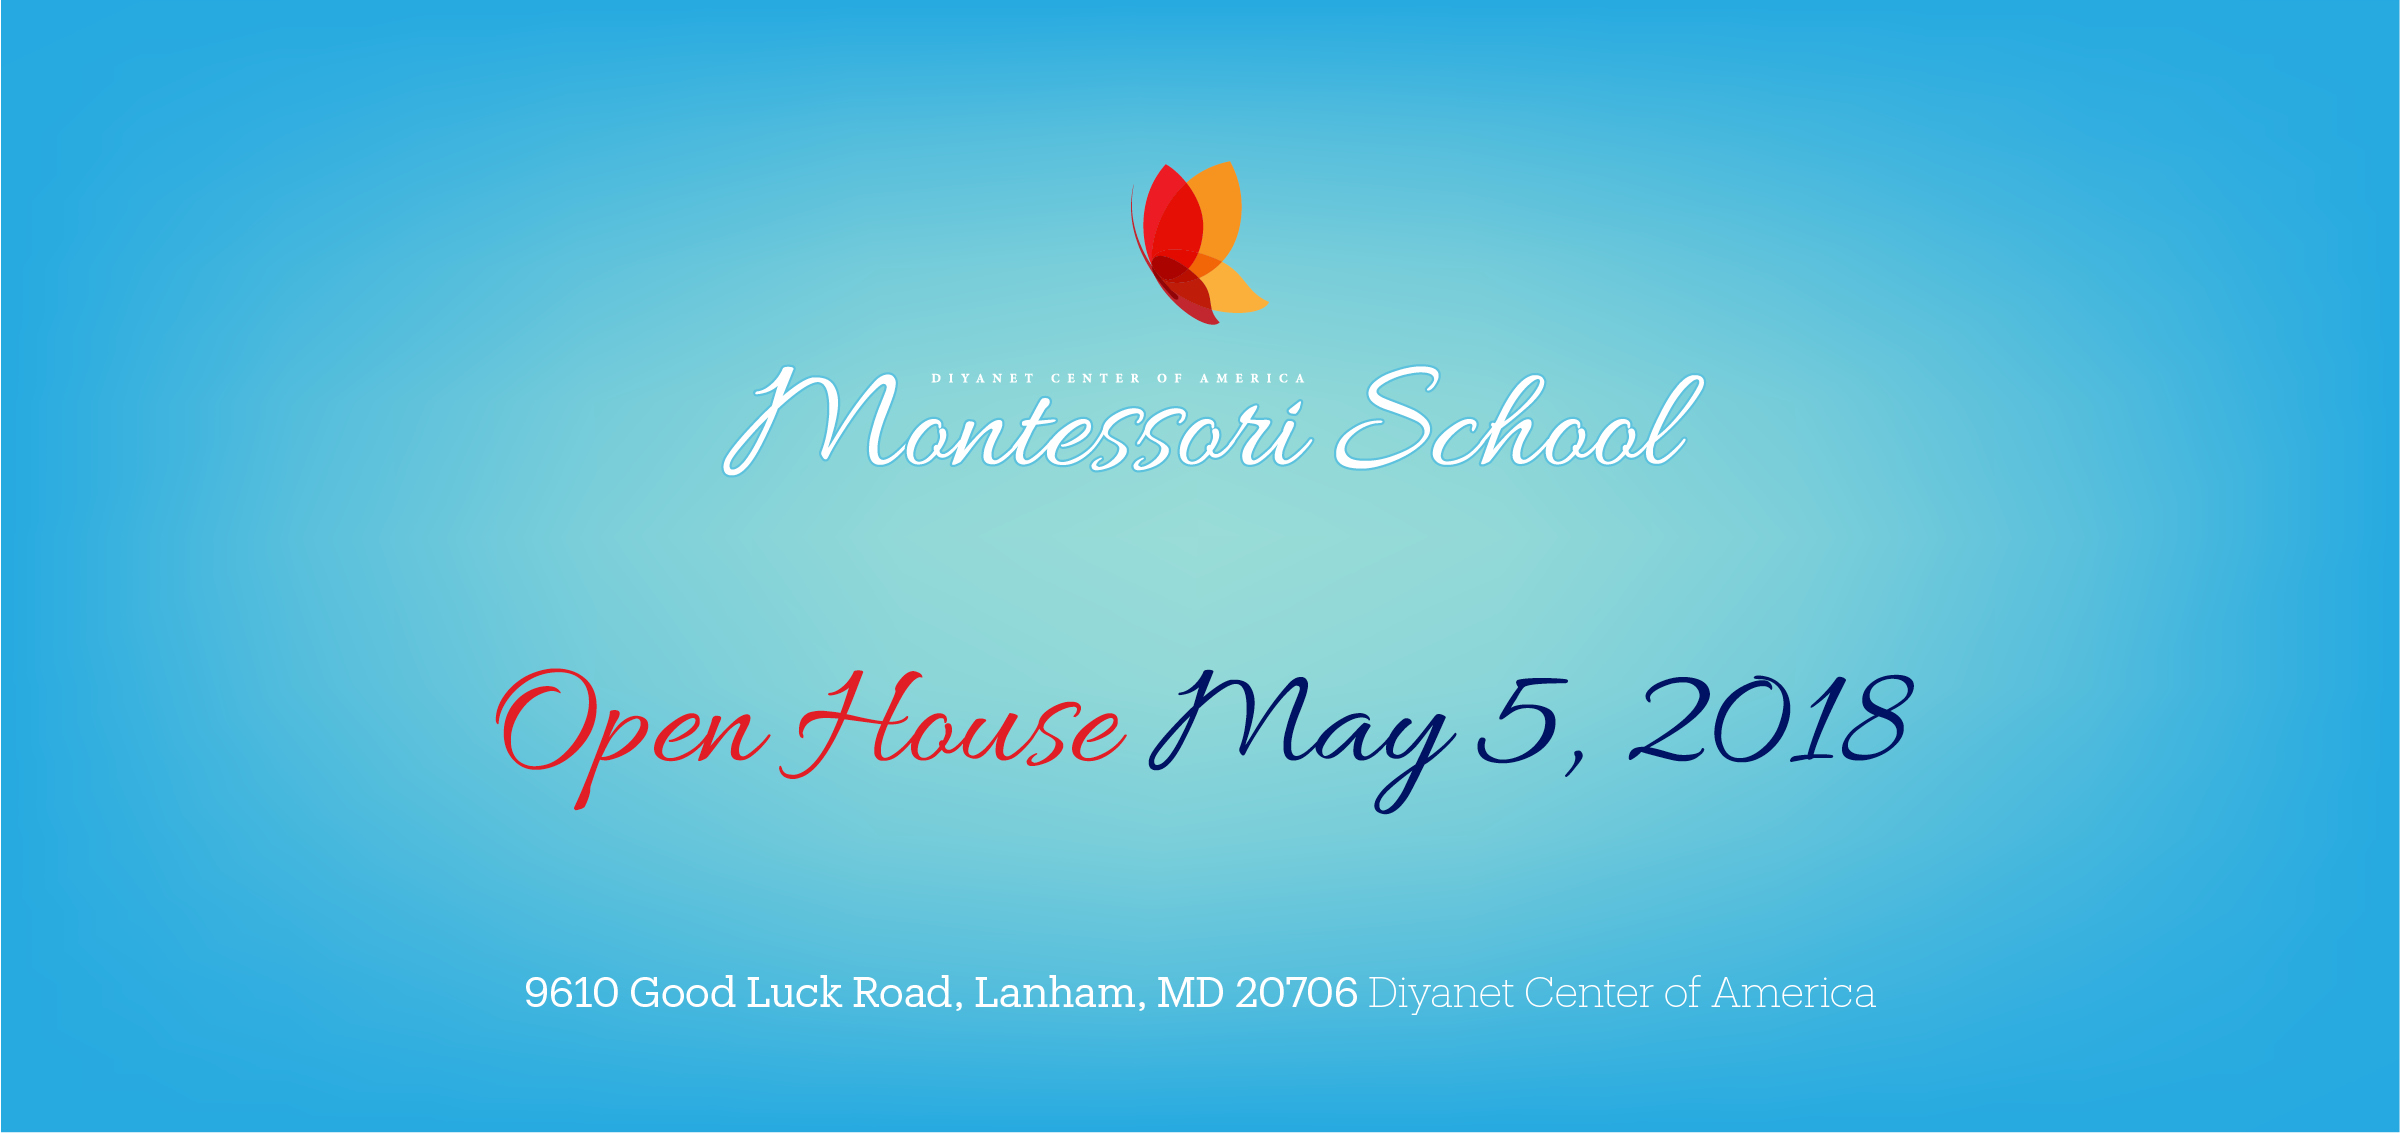 DCA Montessori School